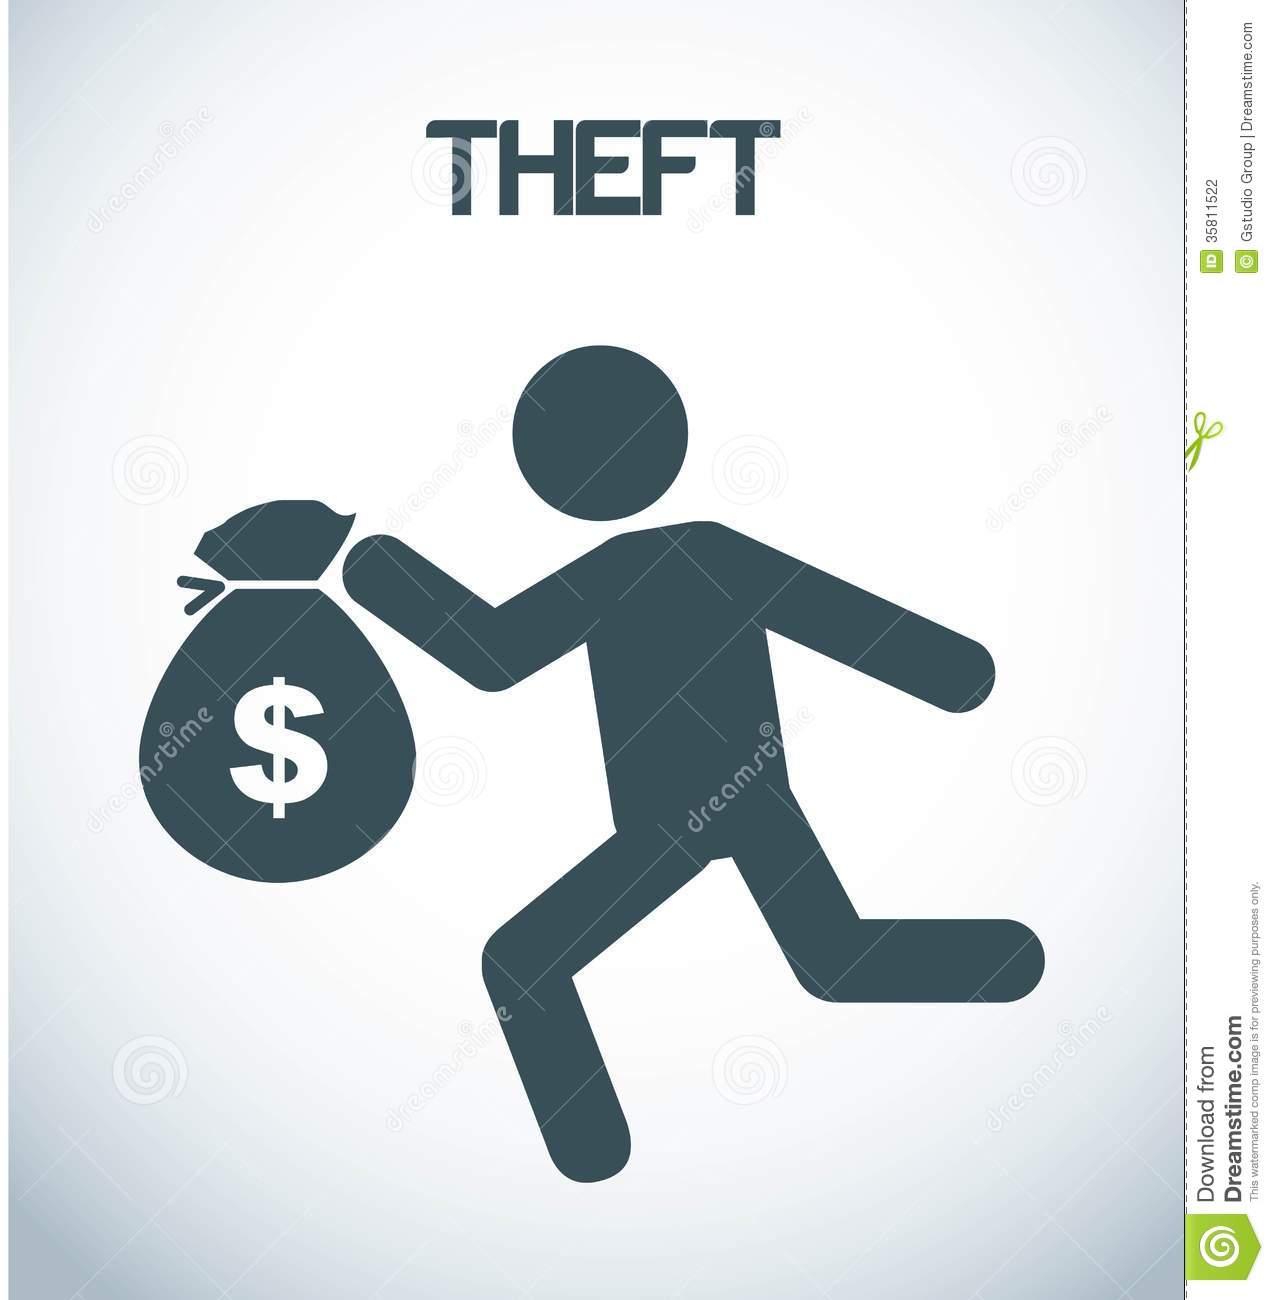 theft design stock photography image 35811522 clip art globe free clipart glove